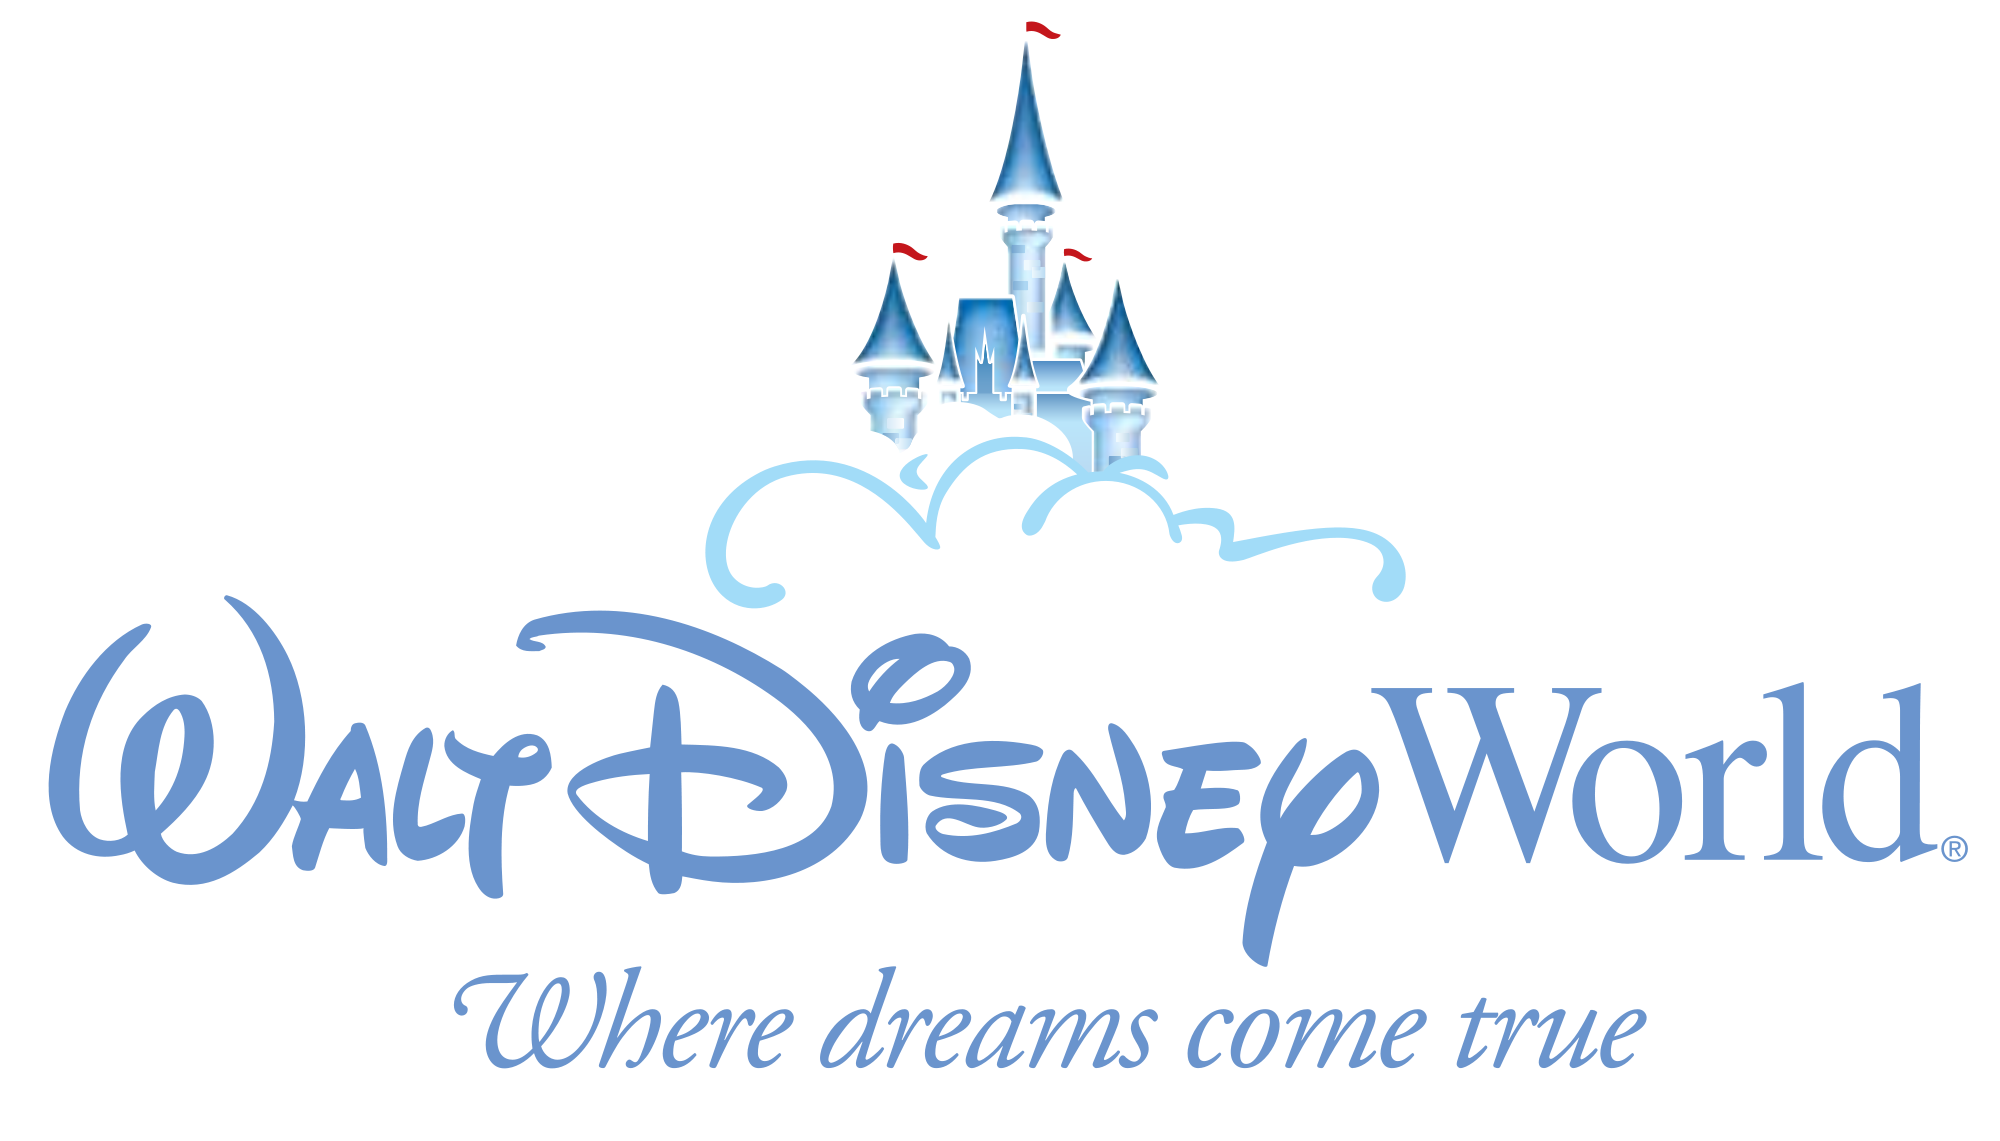 walt disney parks and resorts and Disney parks and resorts honeymoon registry your guests can give you portions of your disney's fairy tale honeymoon or disney destination wedding as a wedding gift.